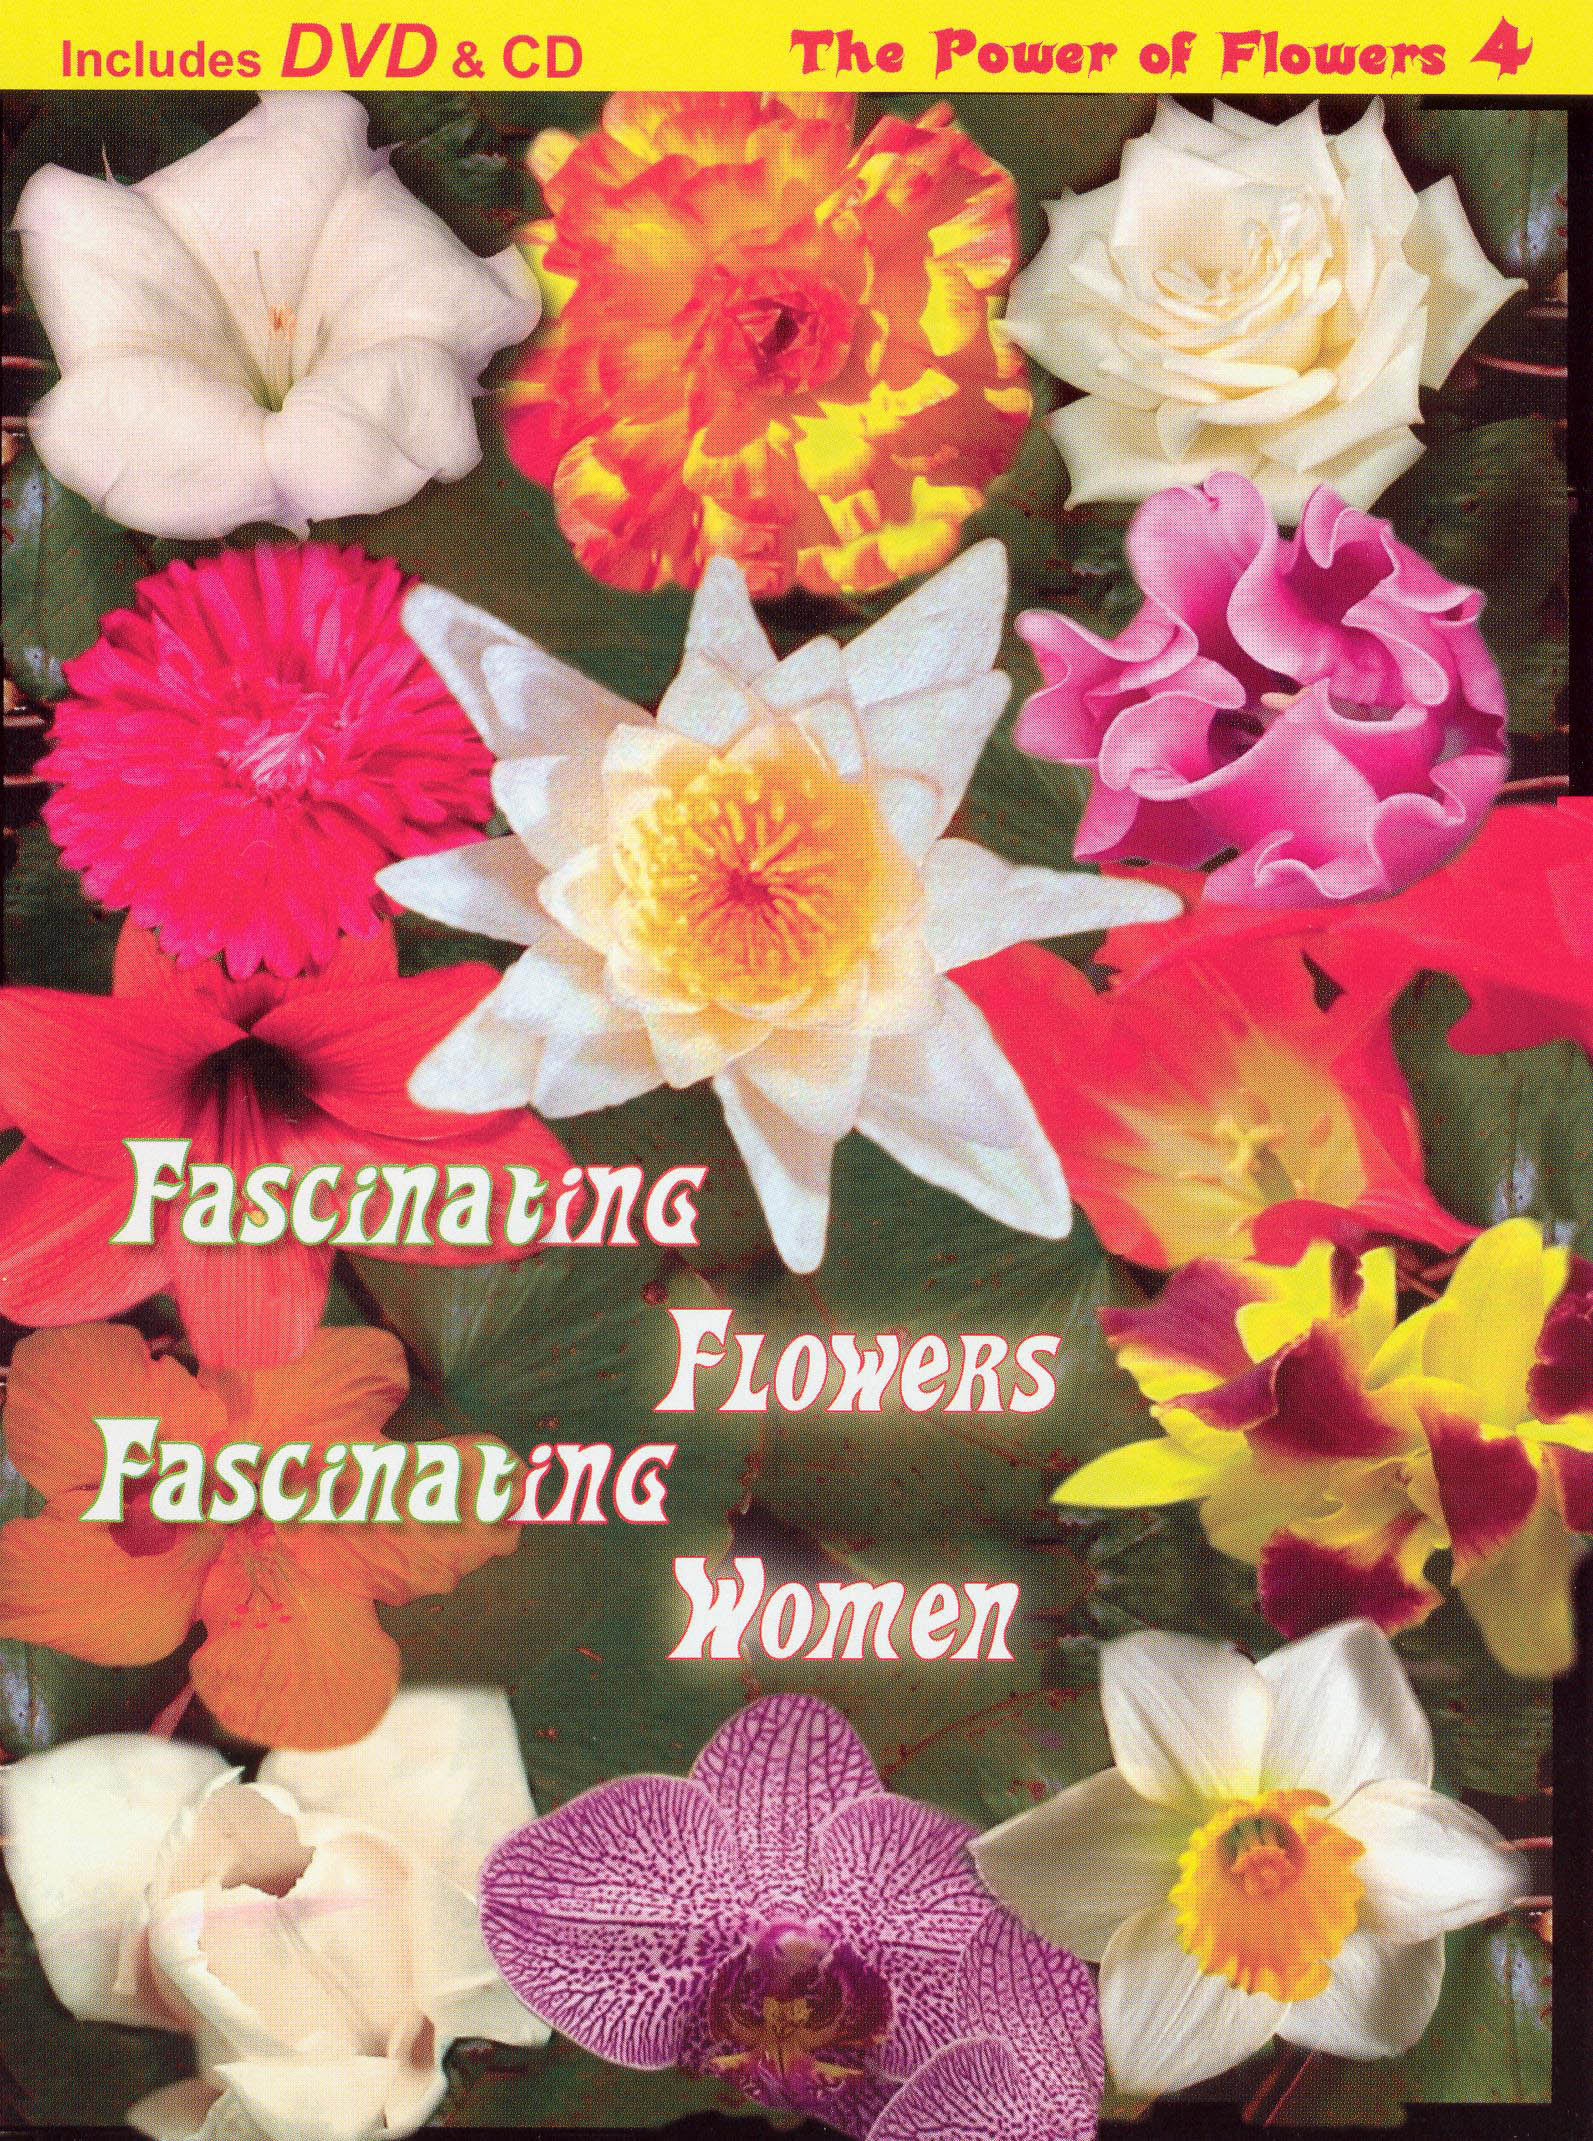 The Power of Flowers, Vol. 4: Fascinating Flowers, Fascinating Women